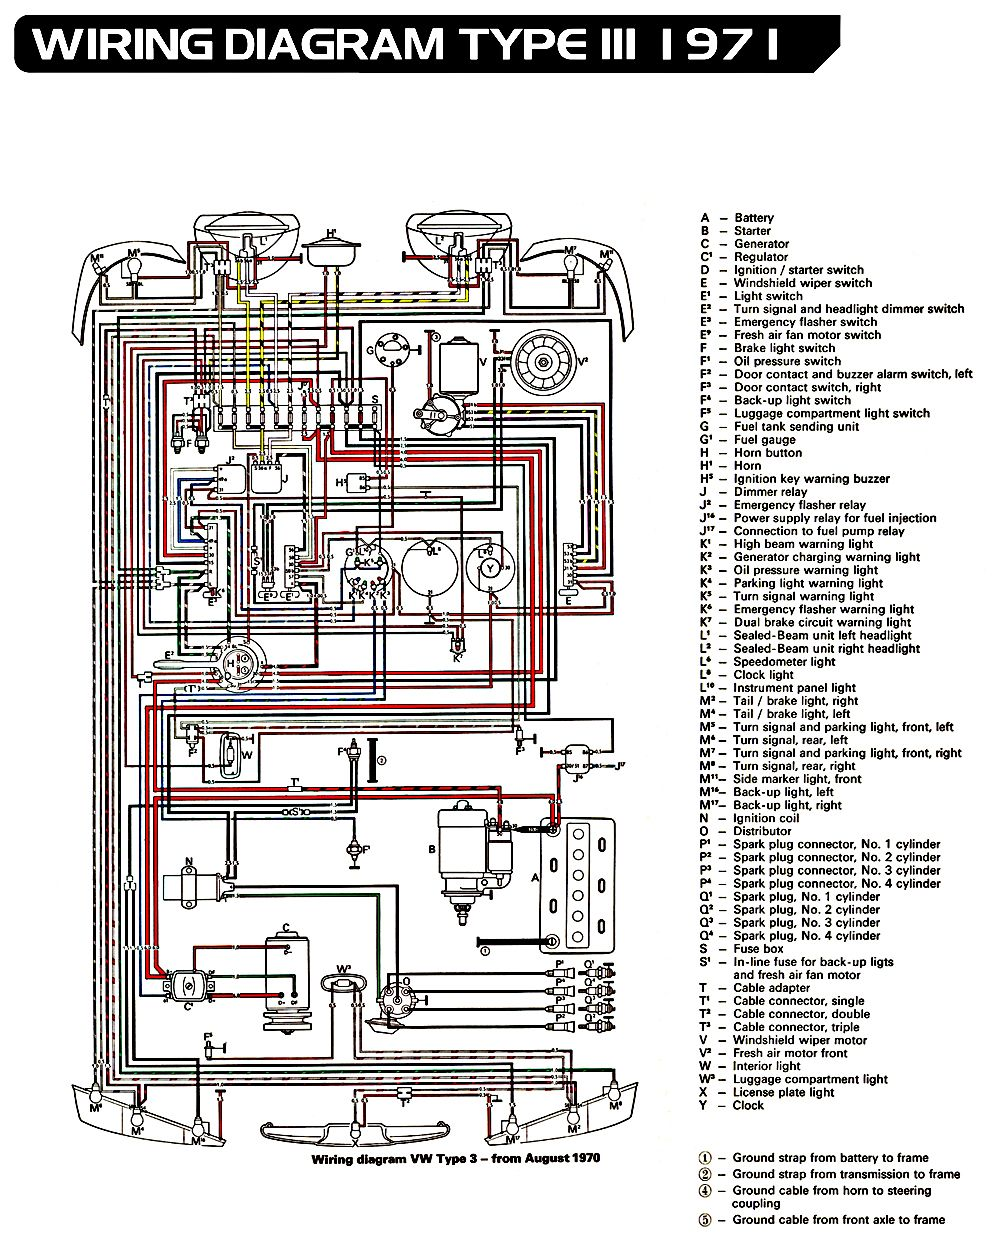 1971 type 3 vw wiring diagram so simple compared to a modern ecu [ 1000 x 1252 Pixel ]